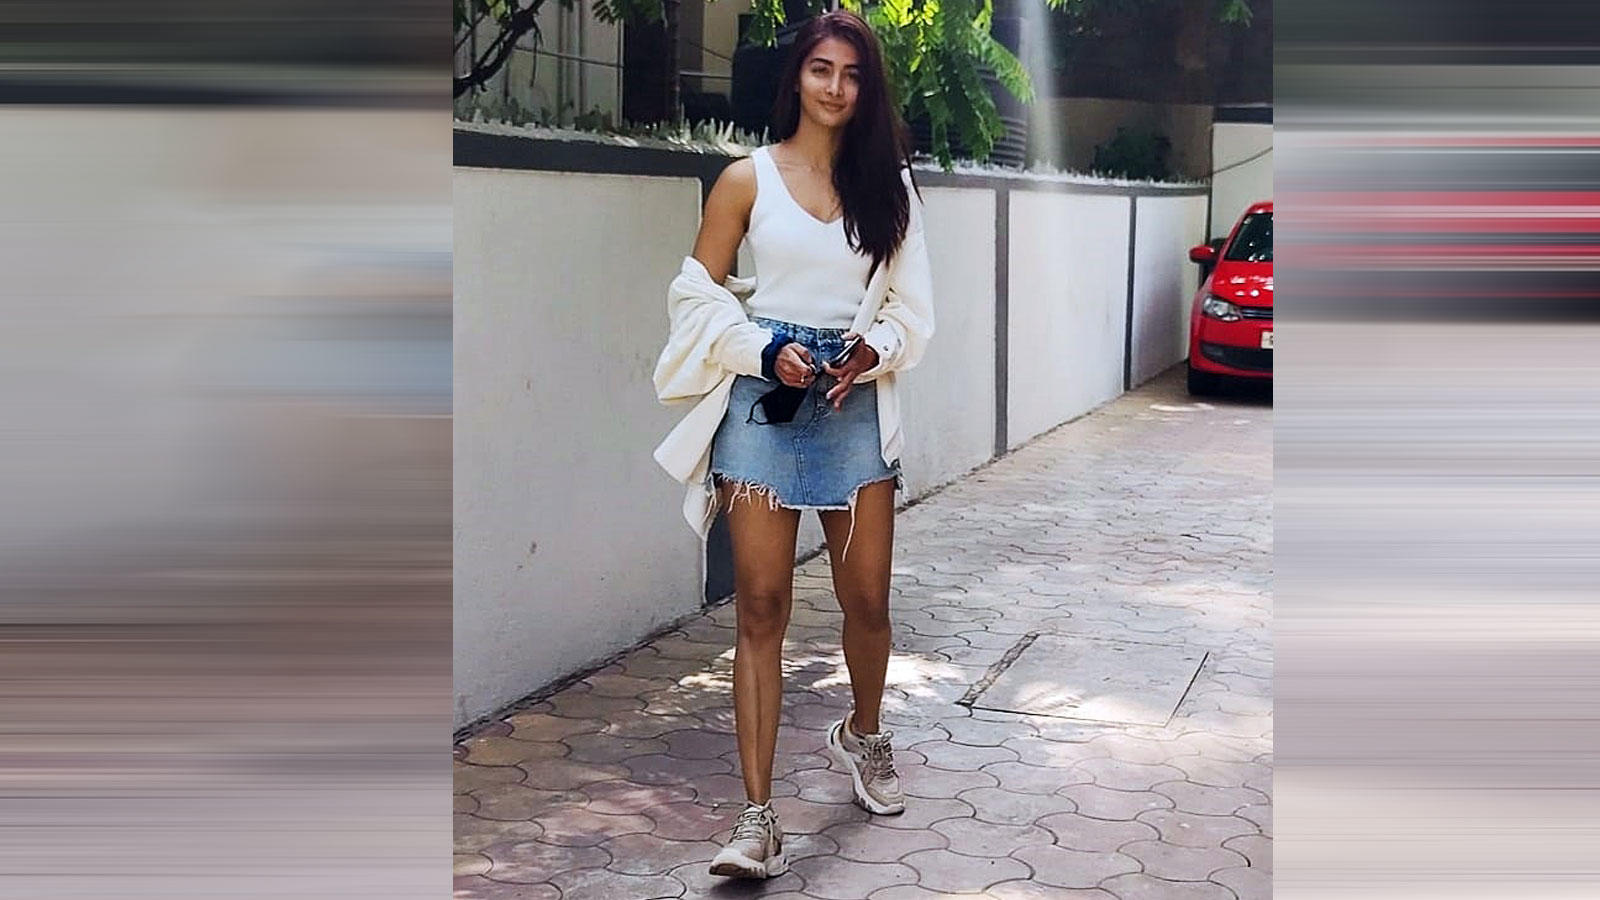 Pooja Hegde poses for paparazzi outside her home in Mumbai | Hindi Movie News – Bollywood – Times of India